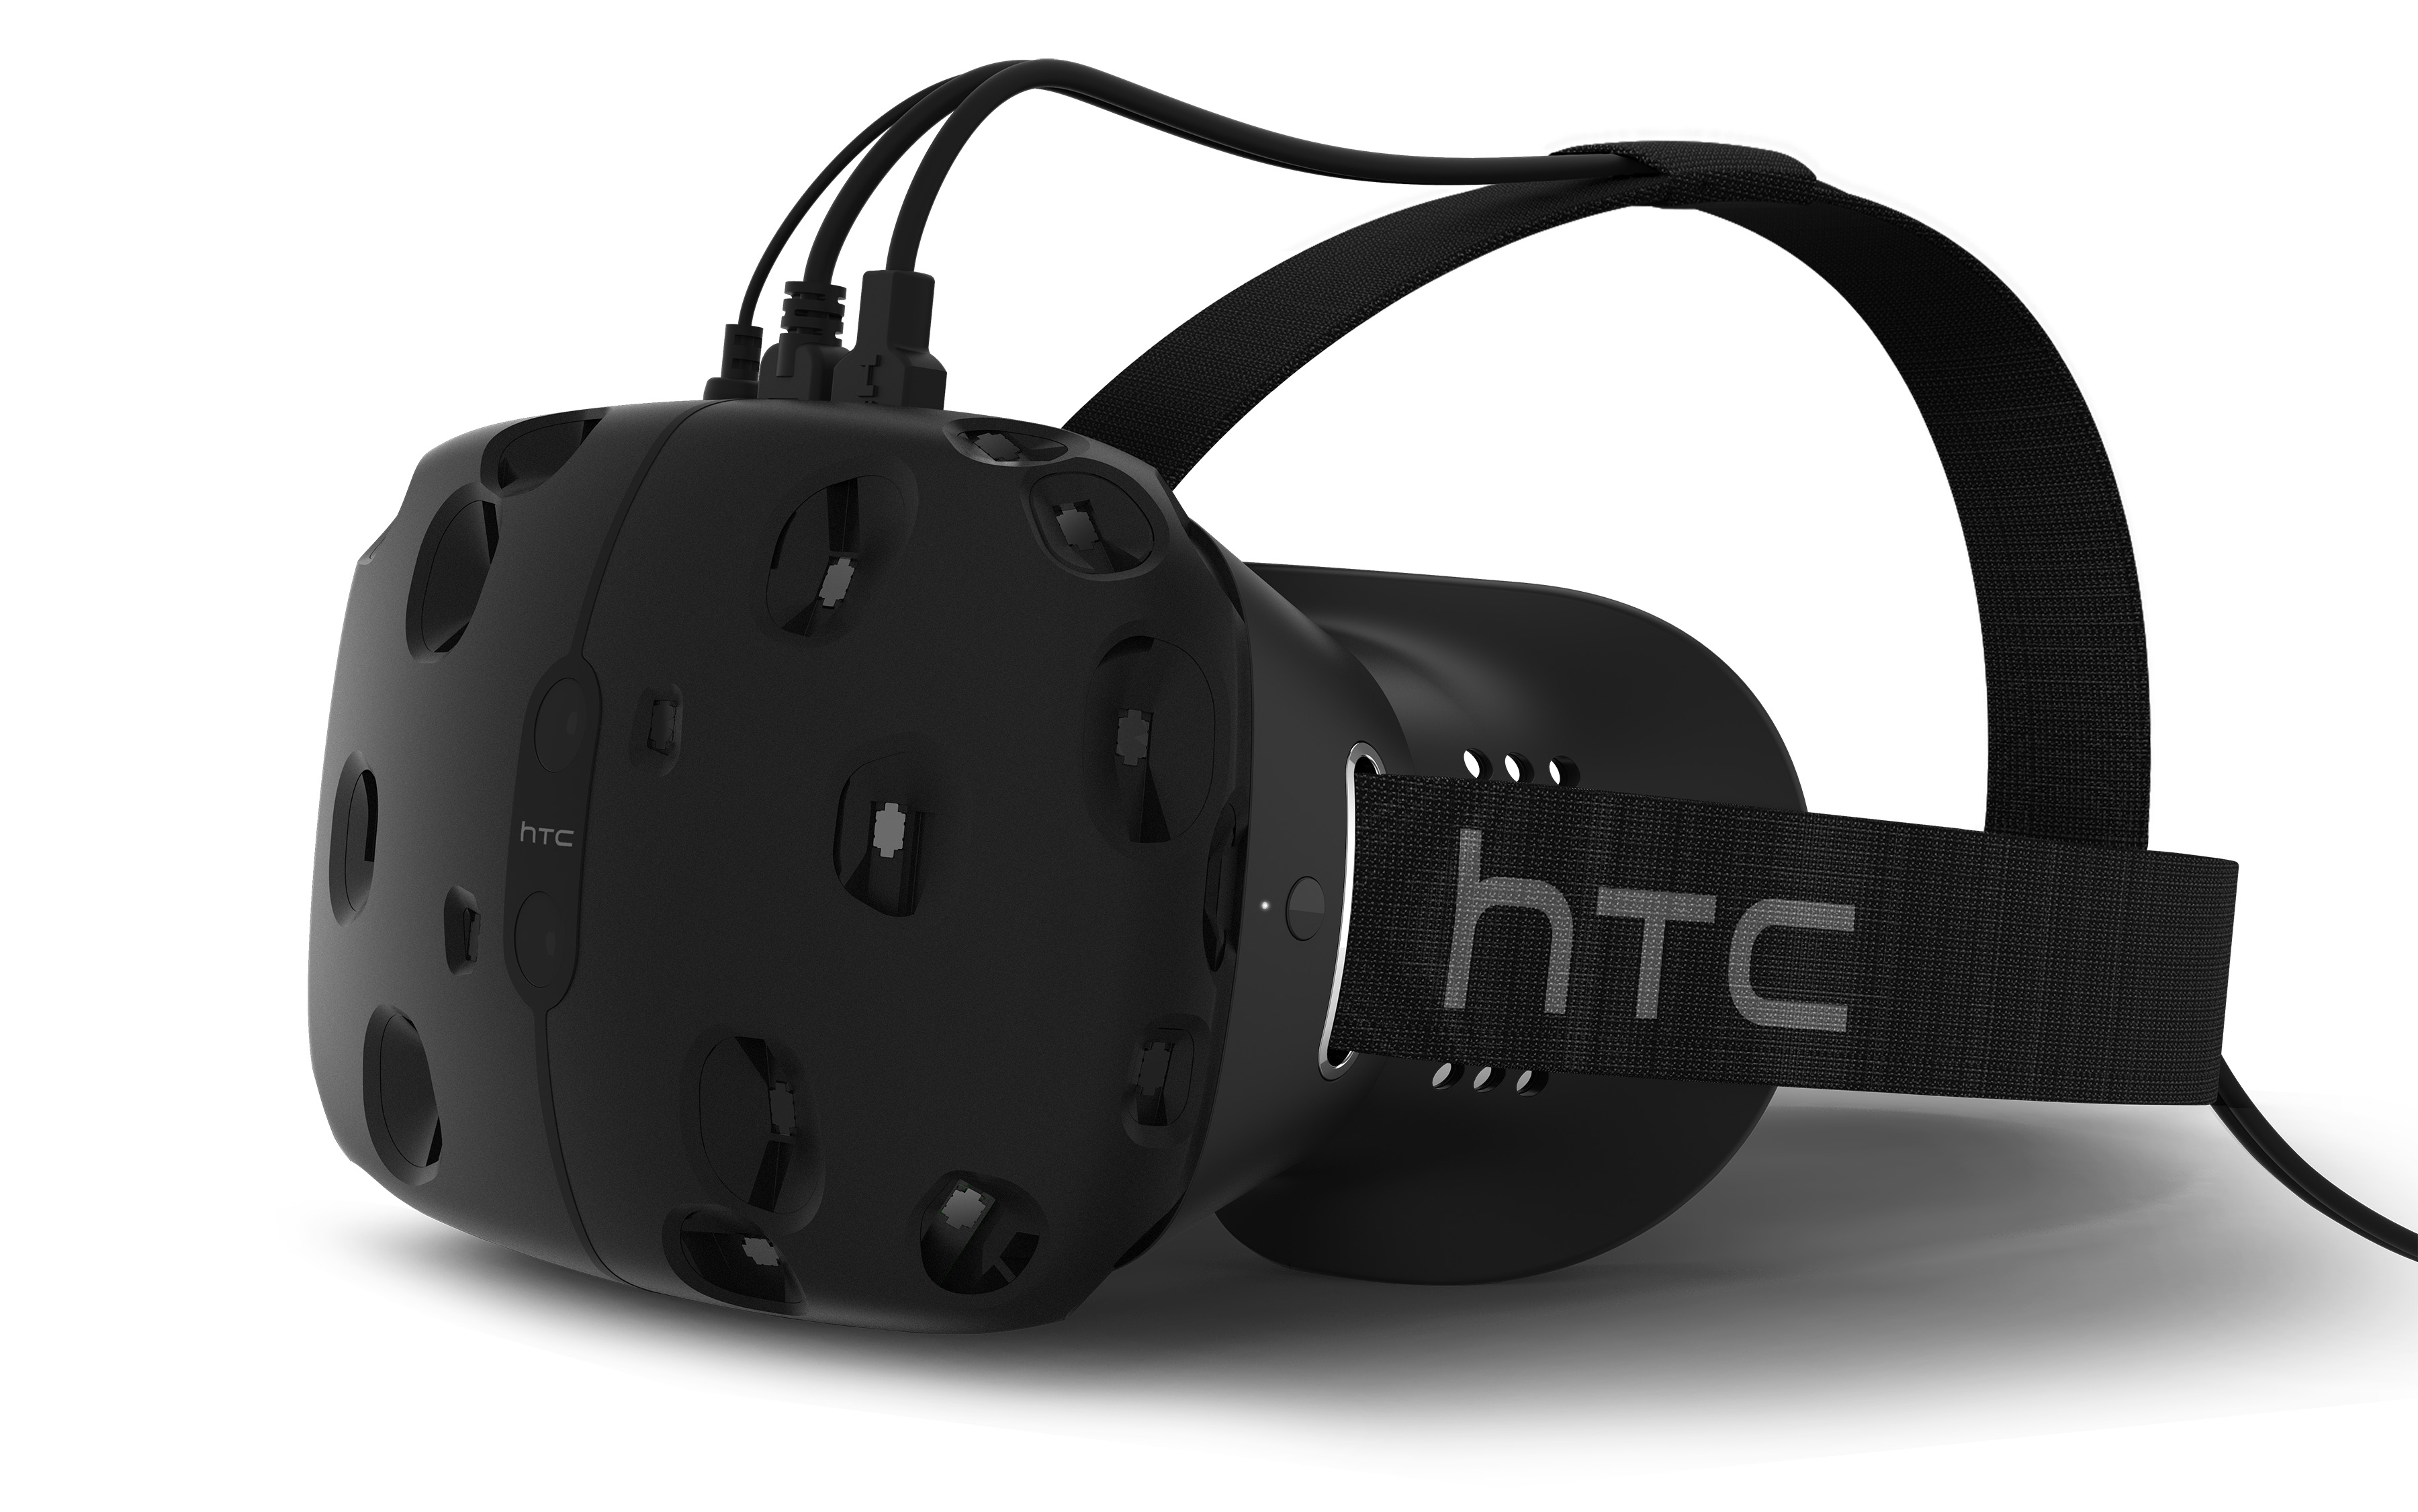 The HTC Vive VR prototype head-mounted display